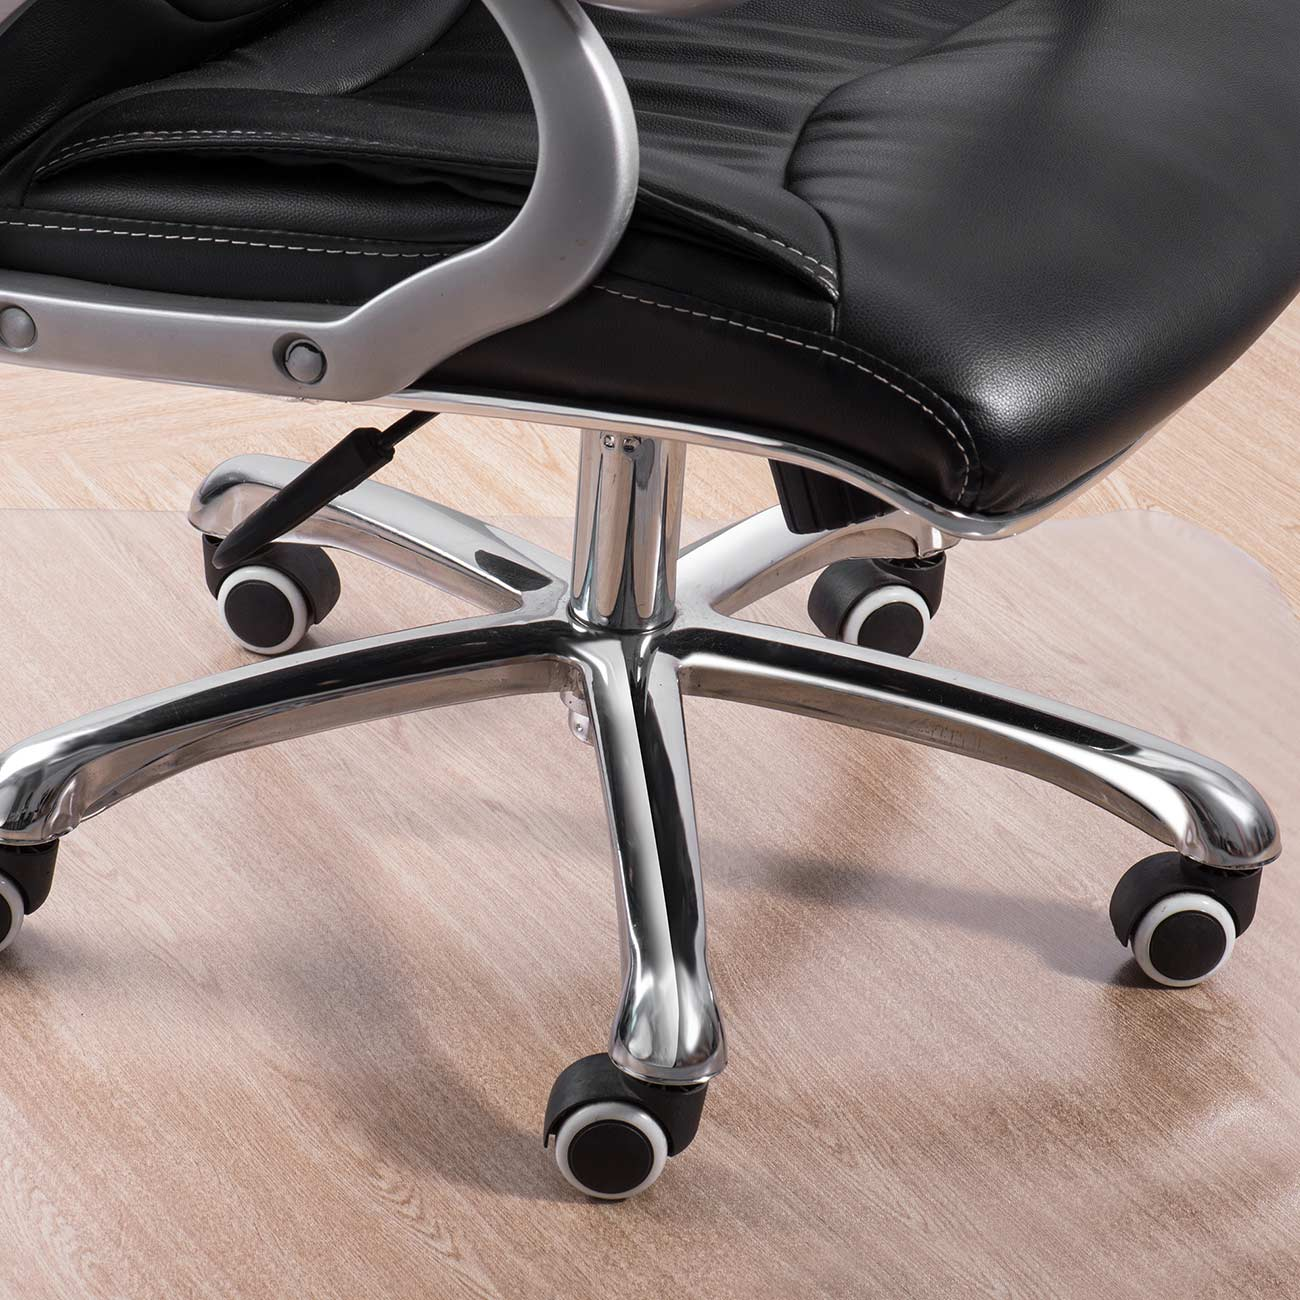 floor mat for desk chair. MY SIT 120 X 150 Cm Floor Mat / Office Chair Underlay Transparent For Hard Floors Desk